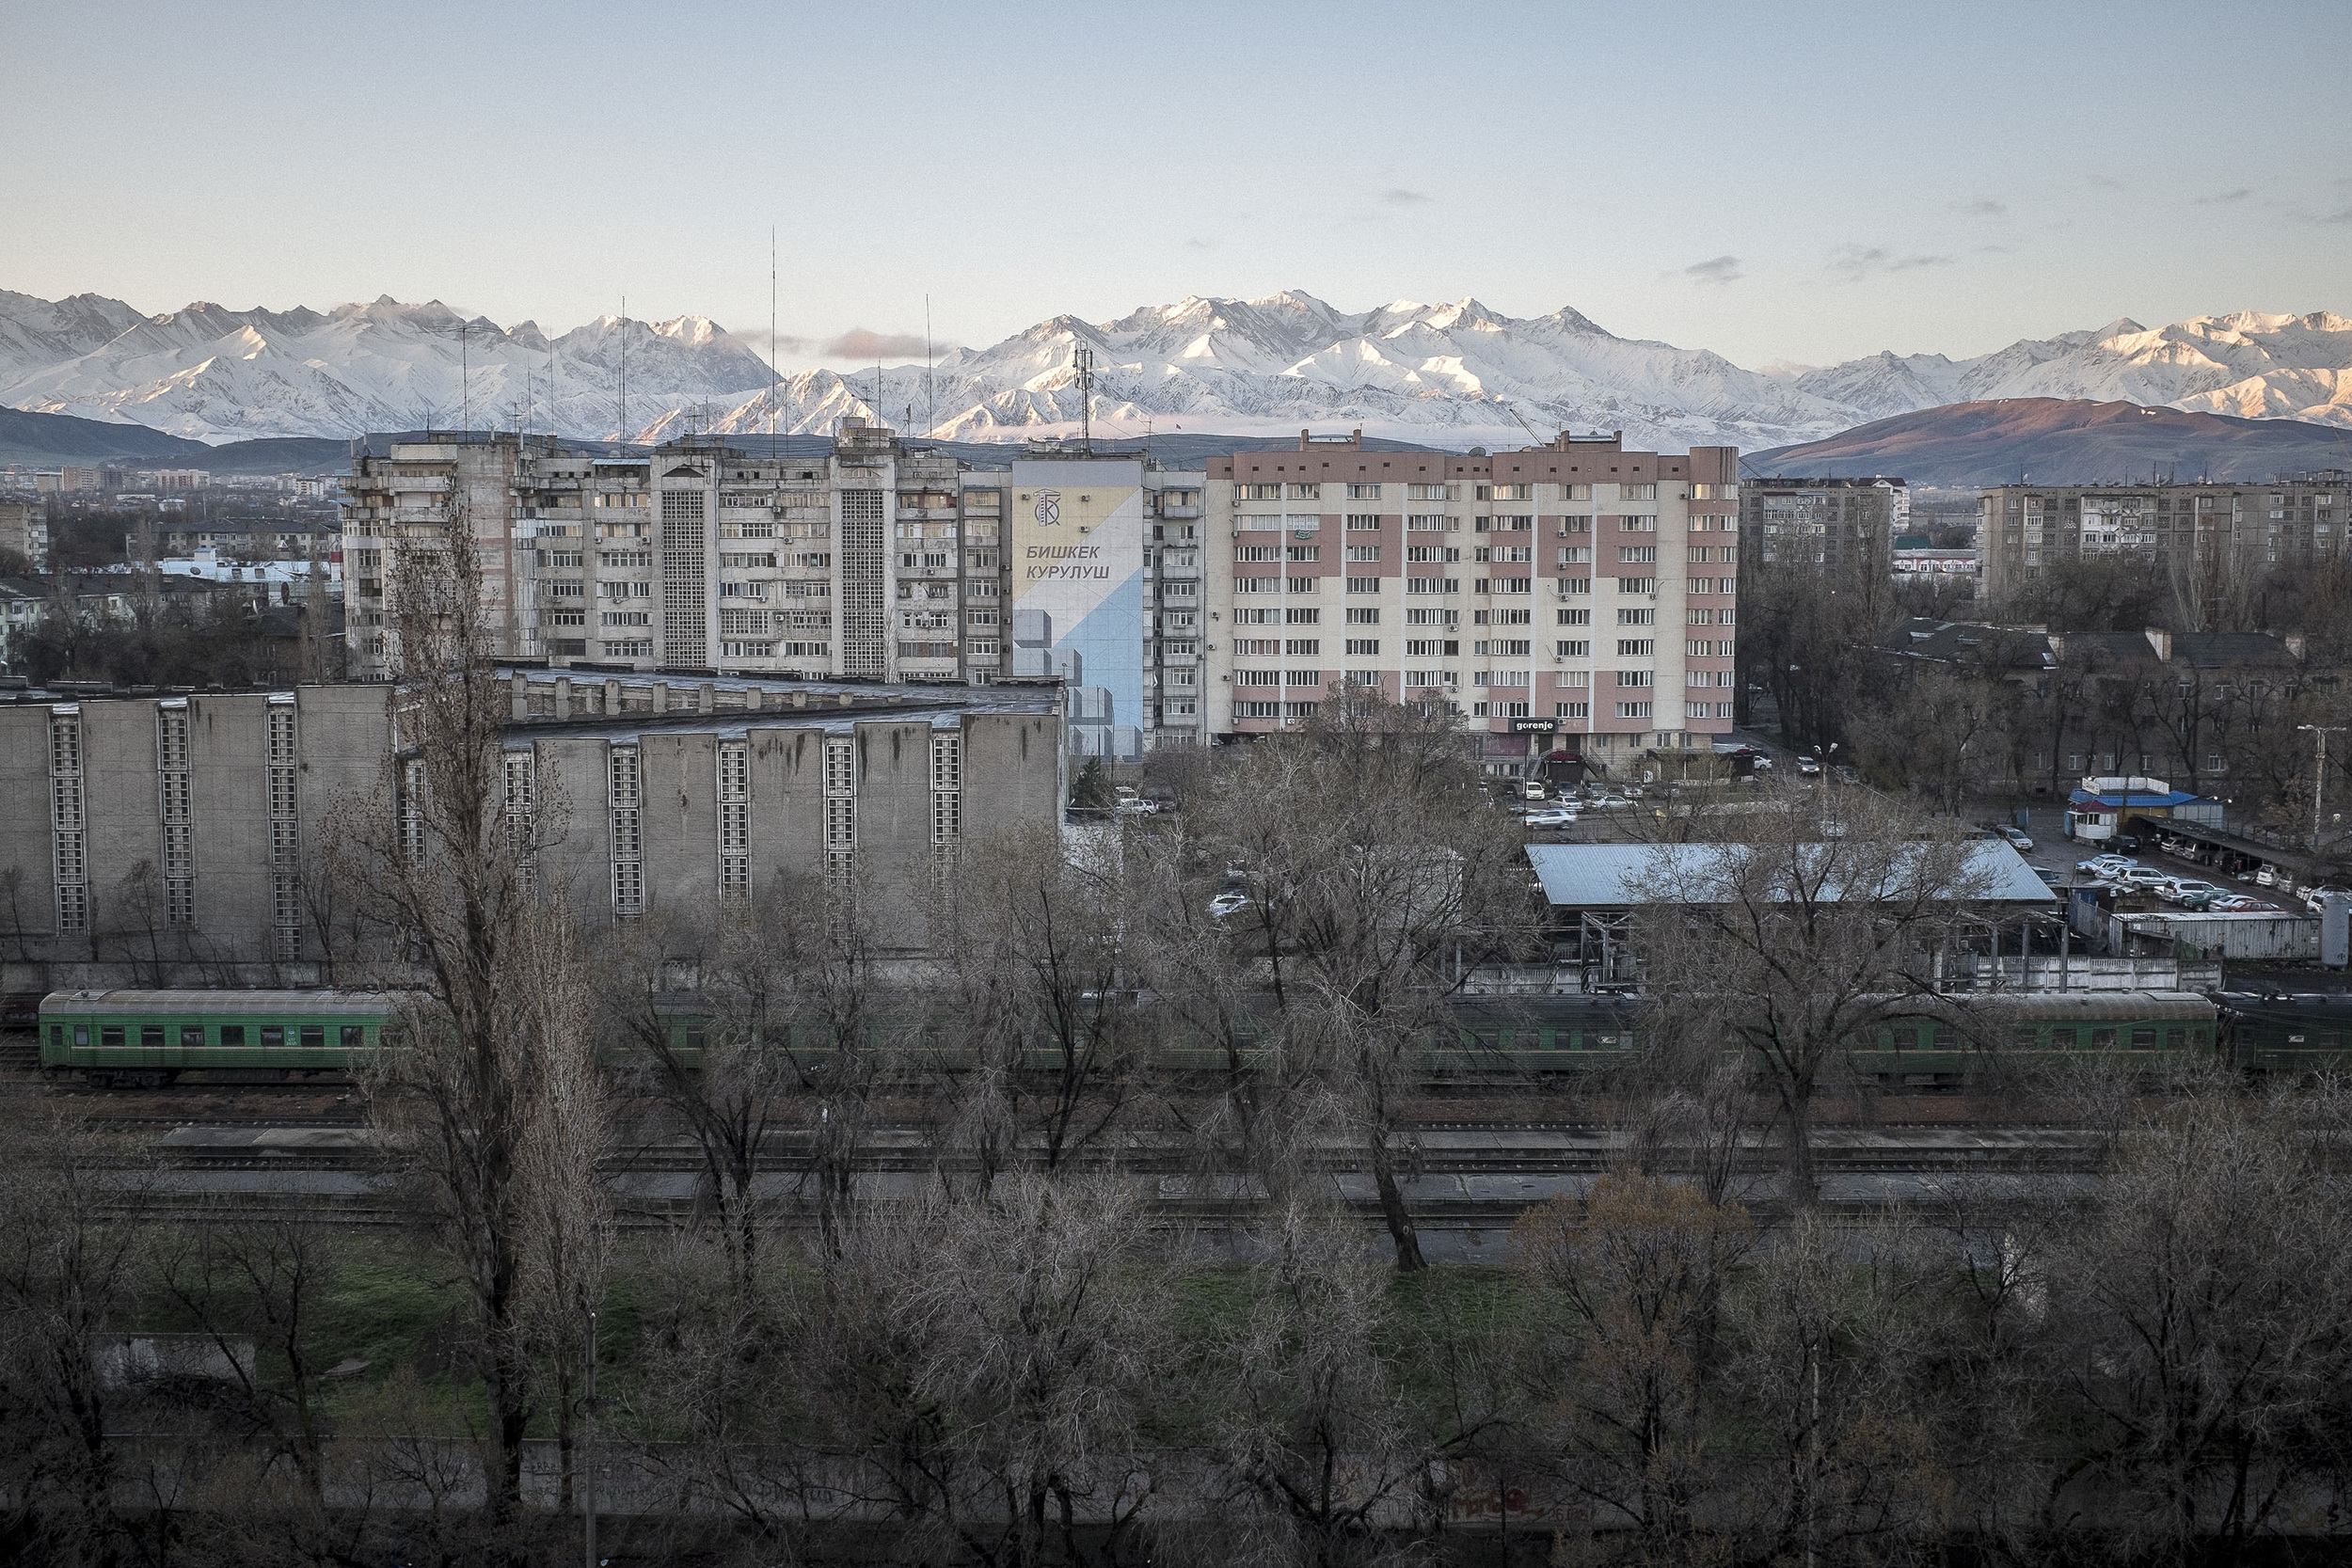 Overview of Bishkek the capital of Kyrgyzstan with the Ala-Too mountains in the background.